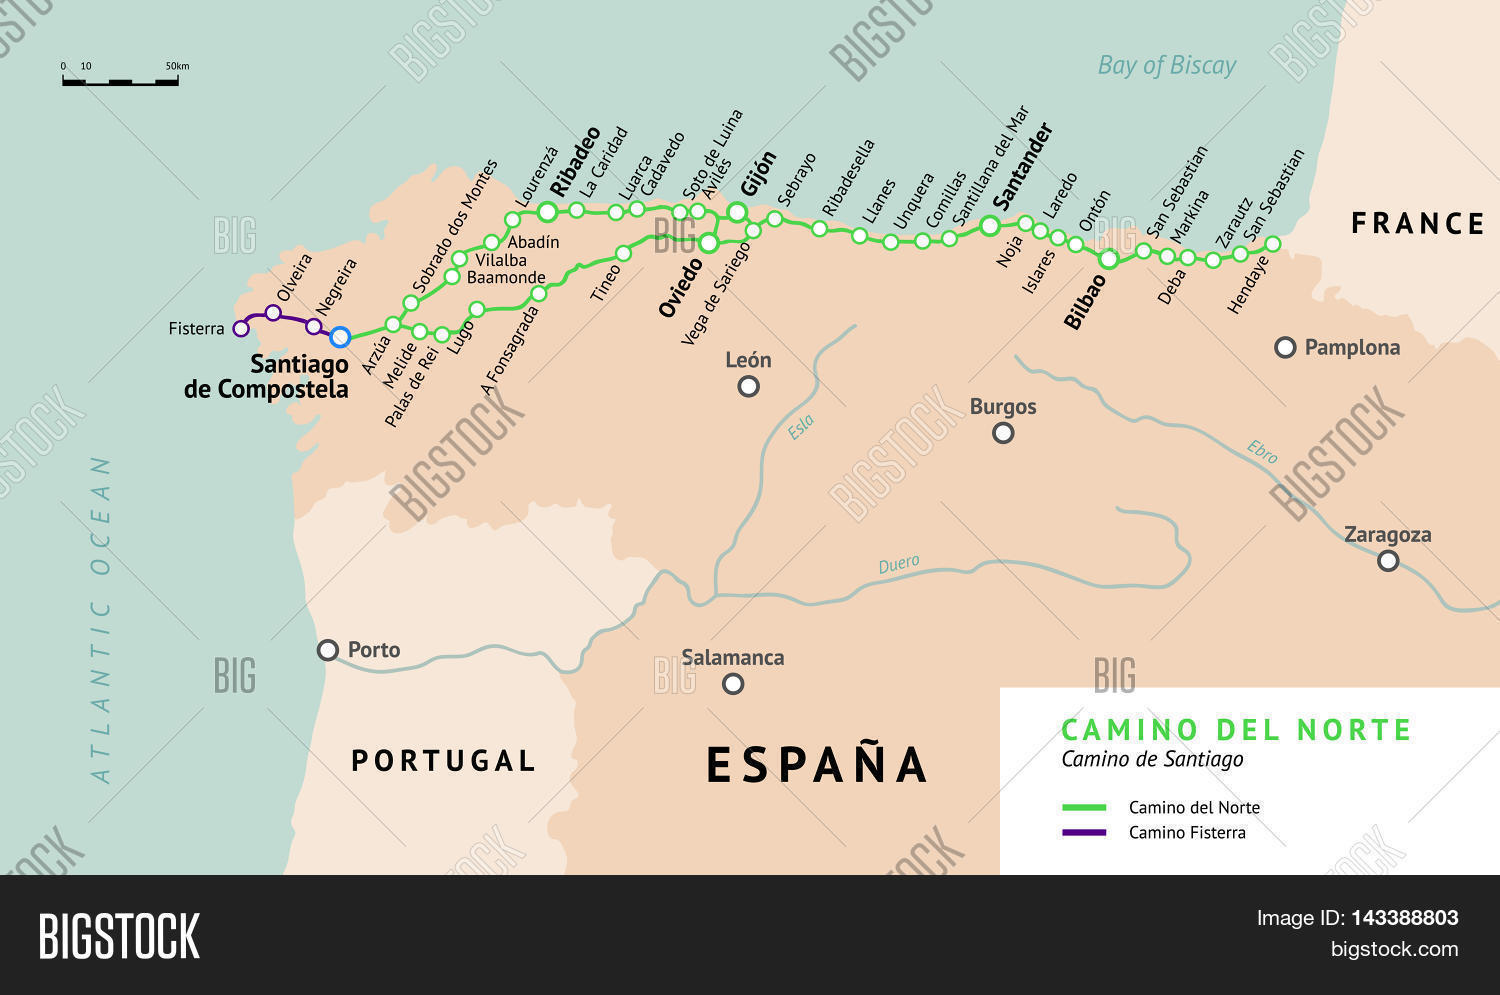 Camino Del Norte Map Vector   Photo  Free Trial    Bigstock Camino del Norte map  Camino De Santiago or The Way of St James